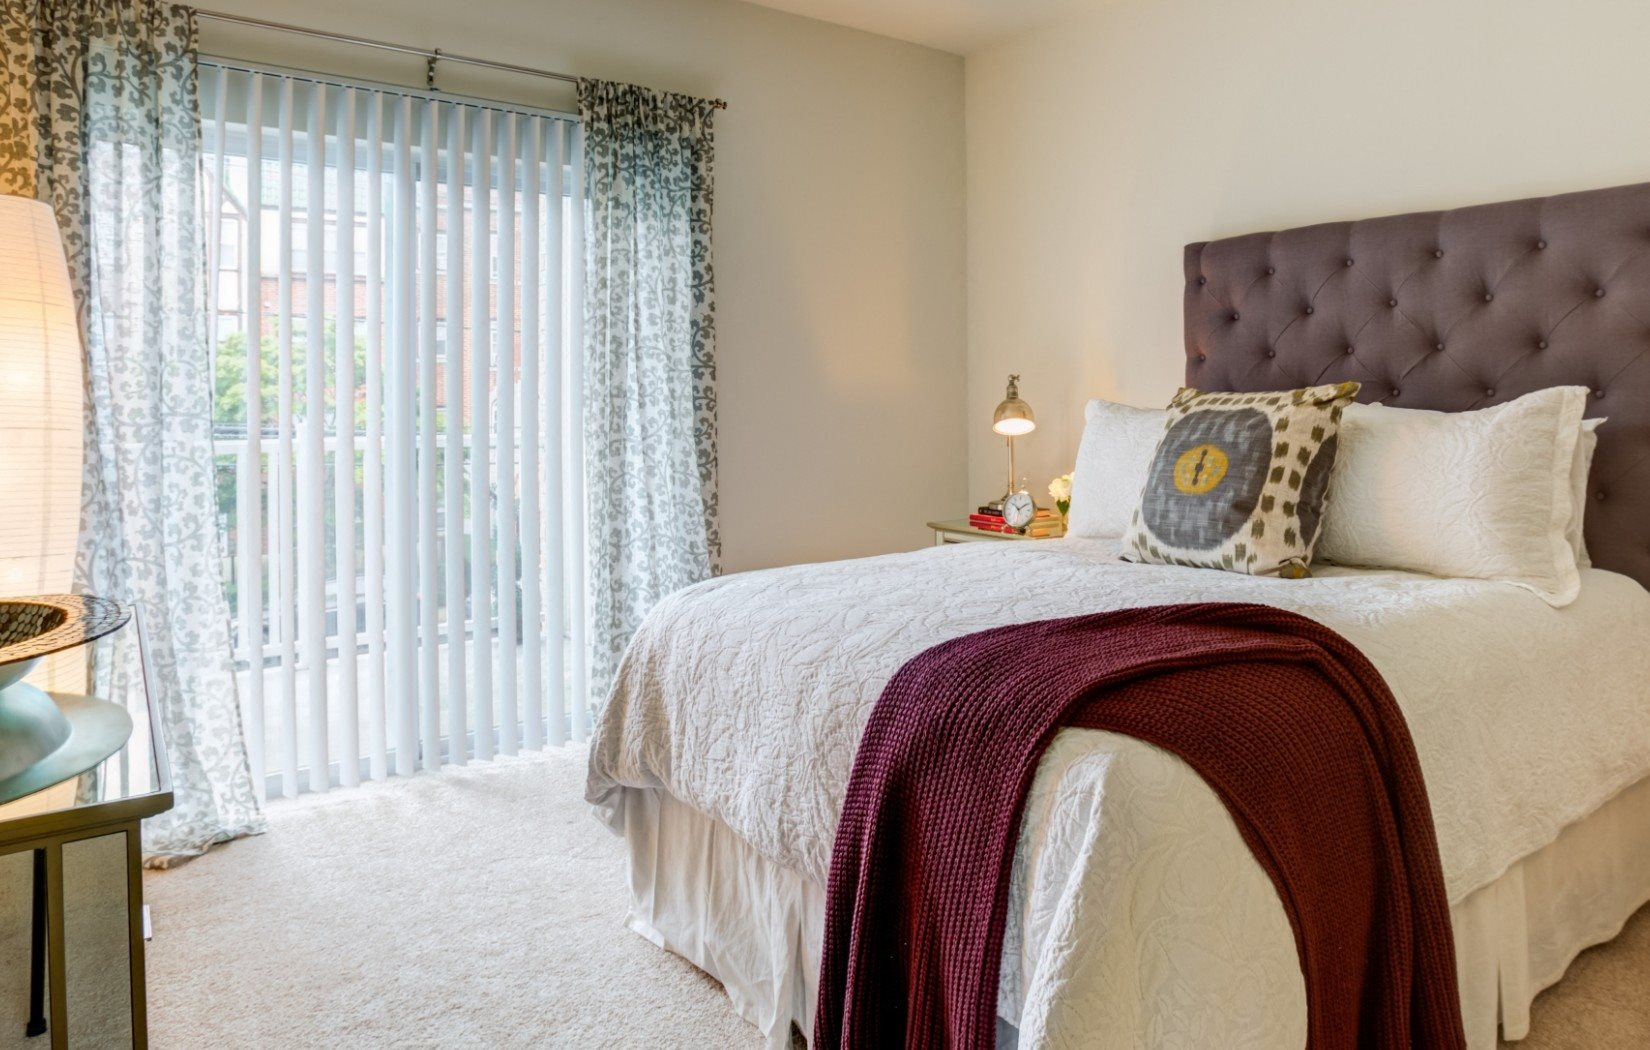 spacious bedroom with carpets and high ceilings Apartments in Stamford, CT | Glenview House